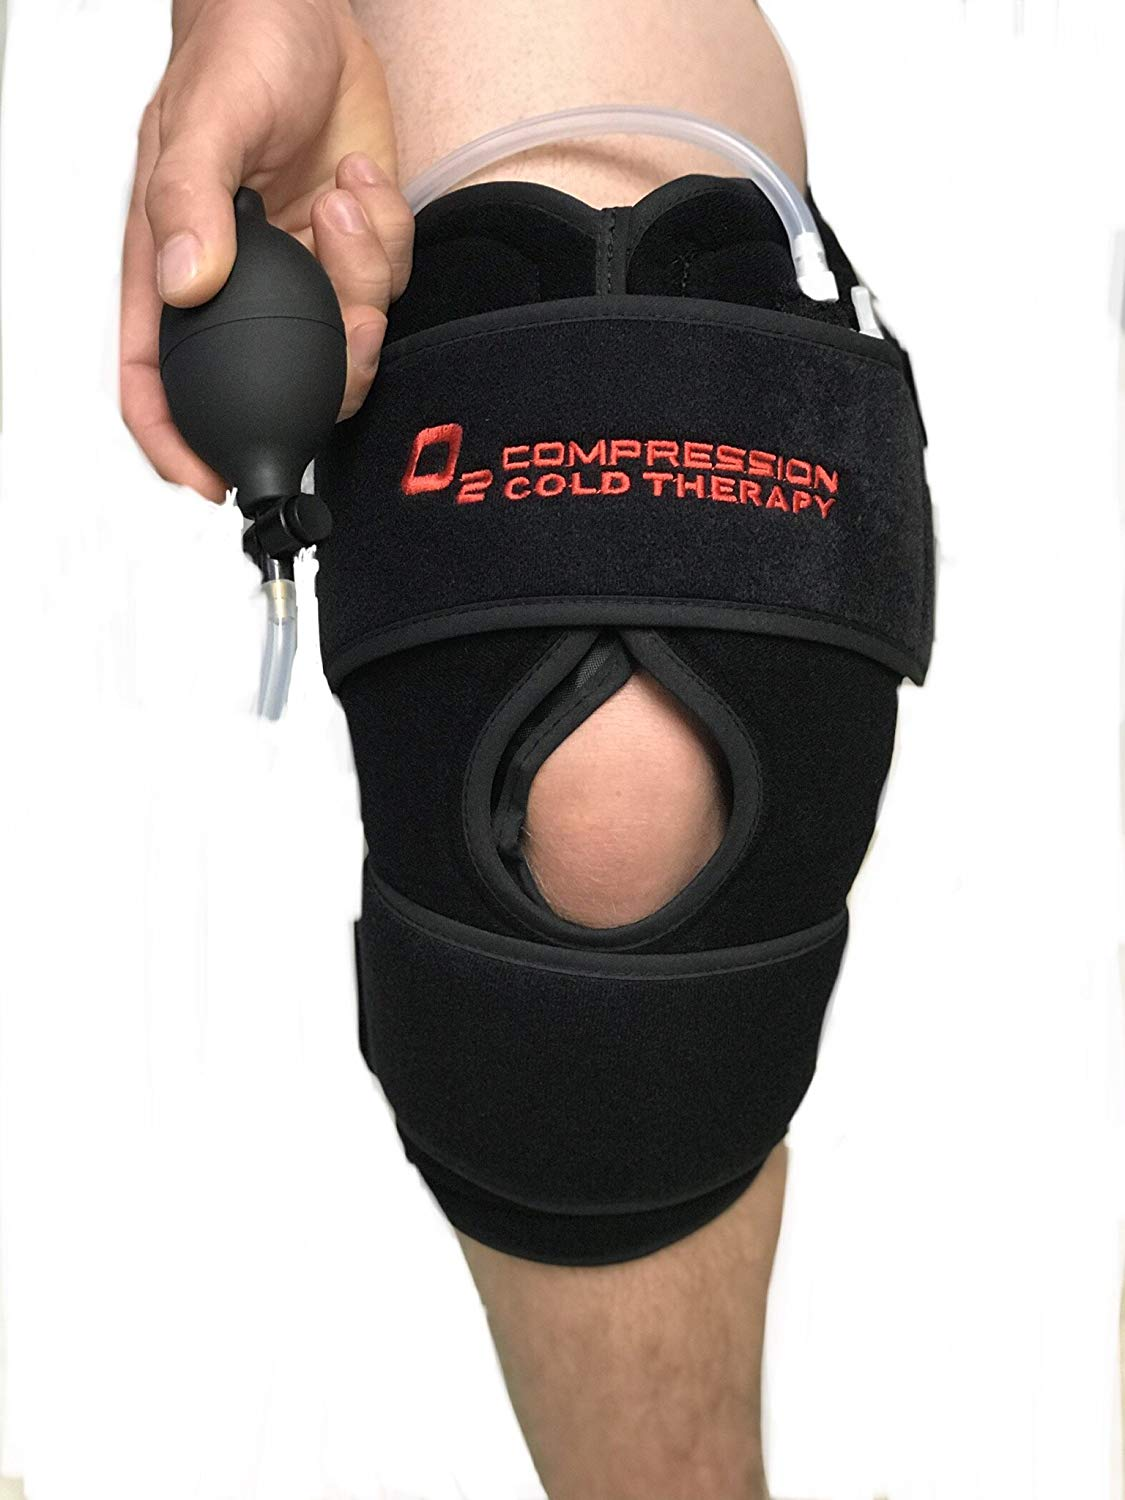 O2 Cold Therapy Knee Wrap